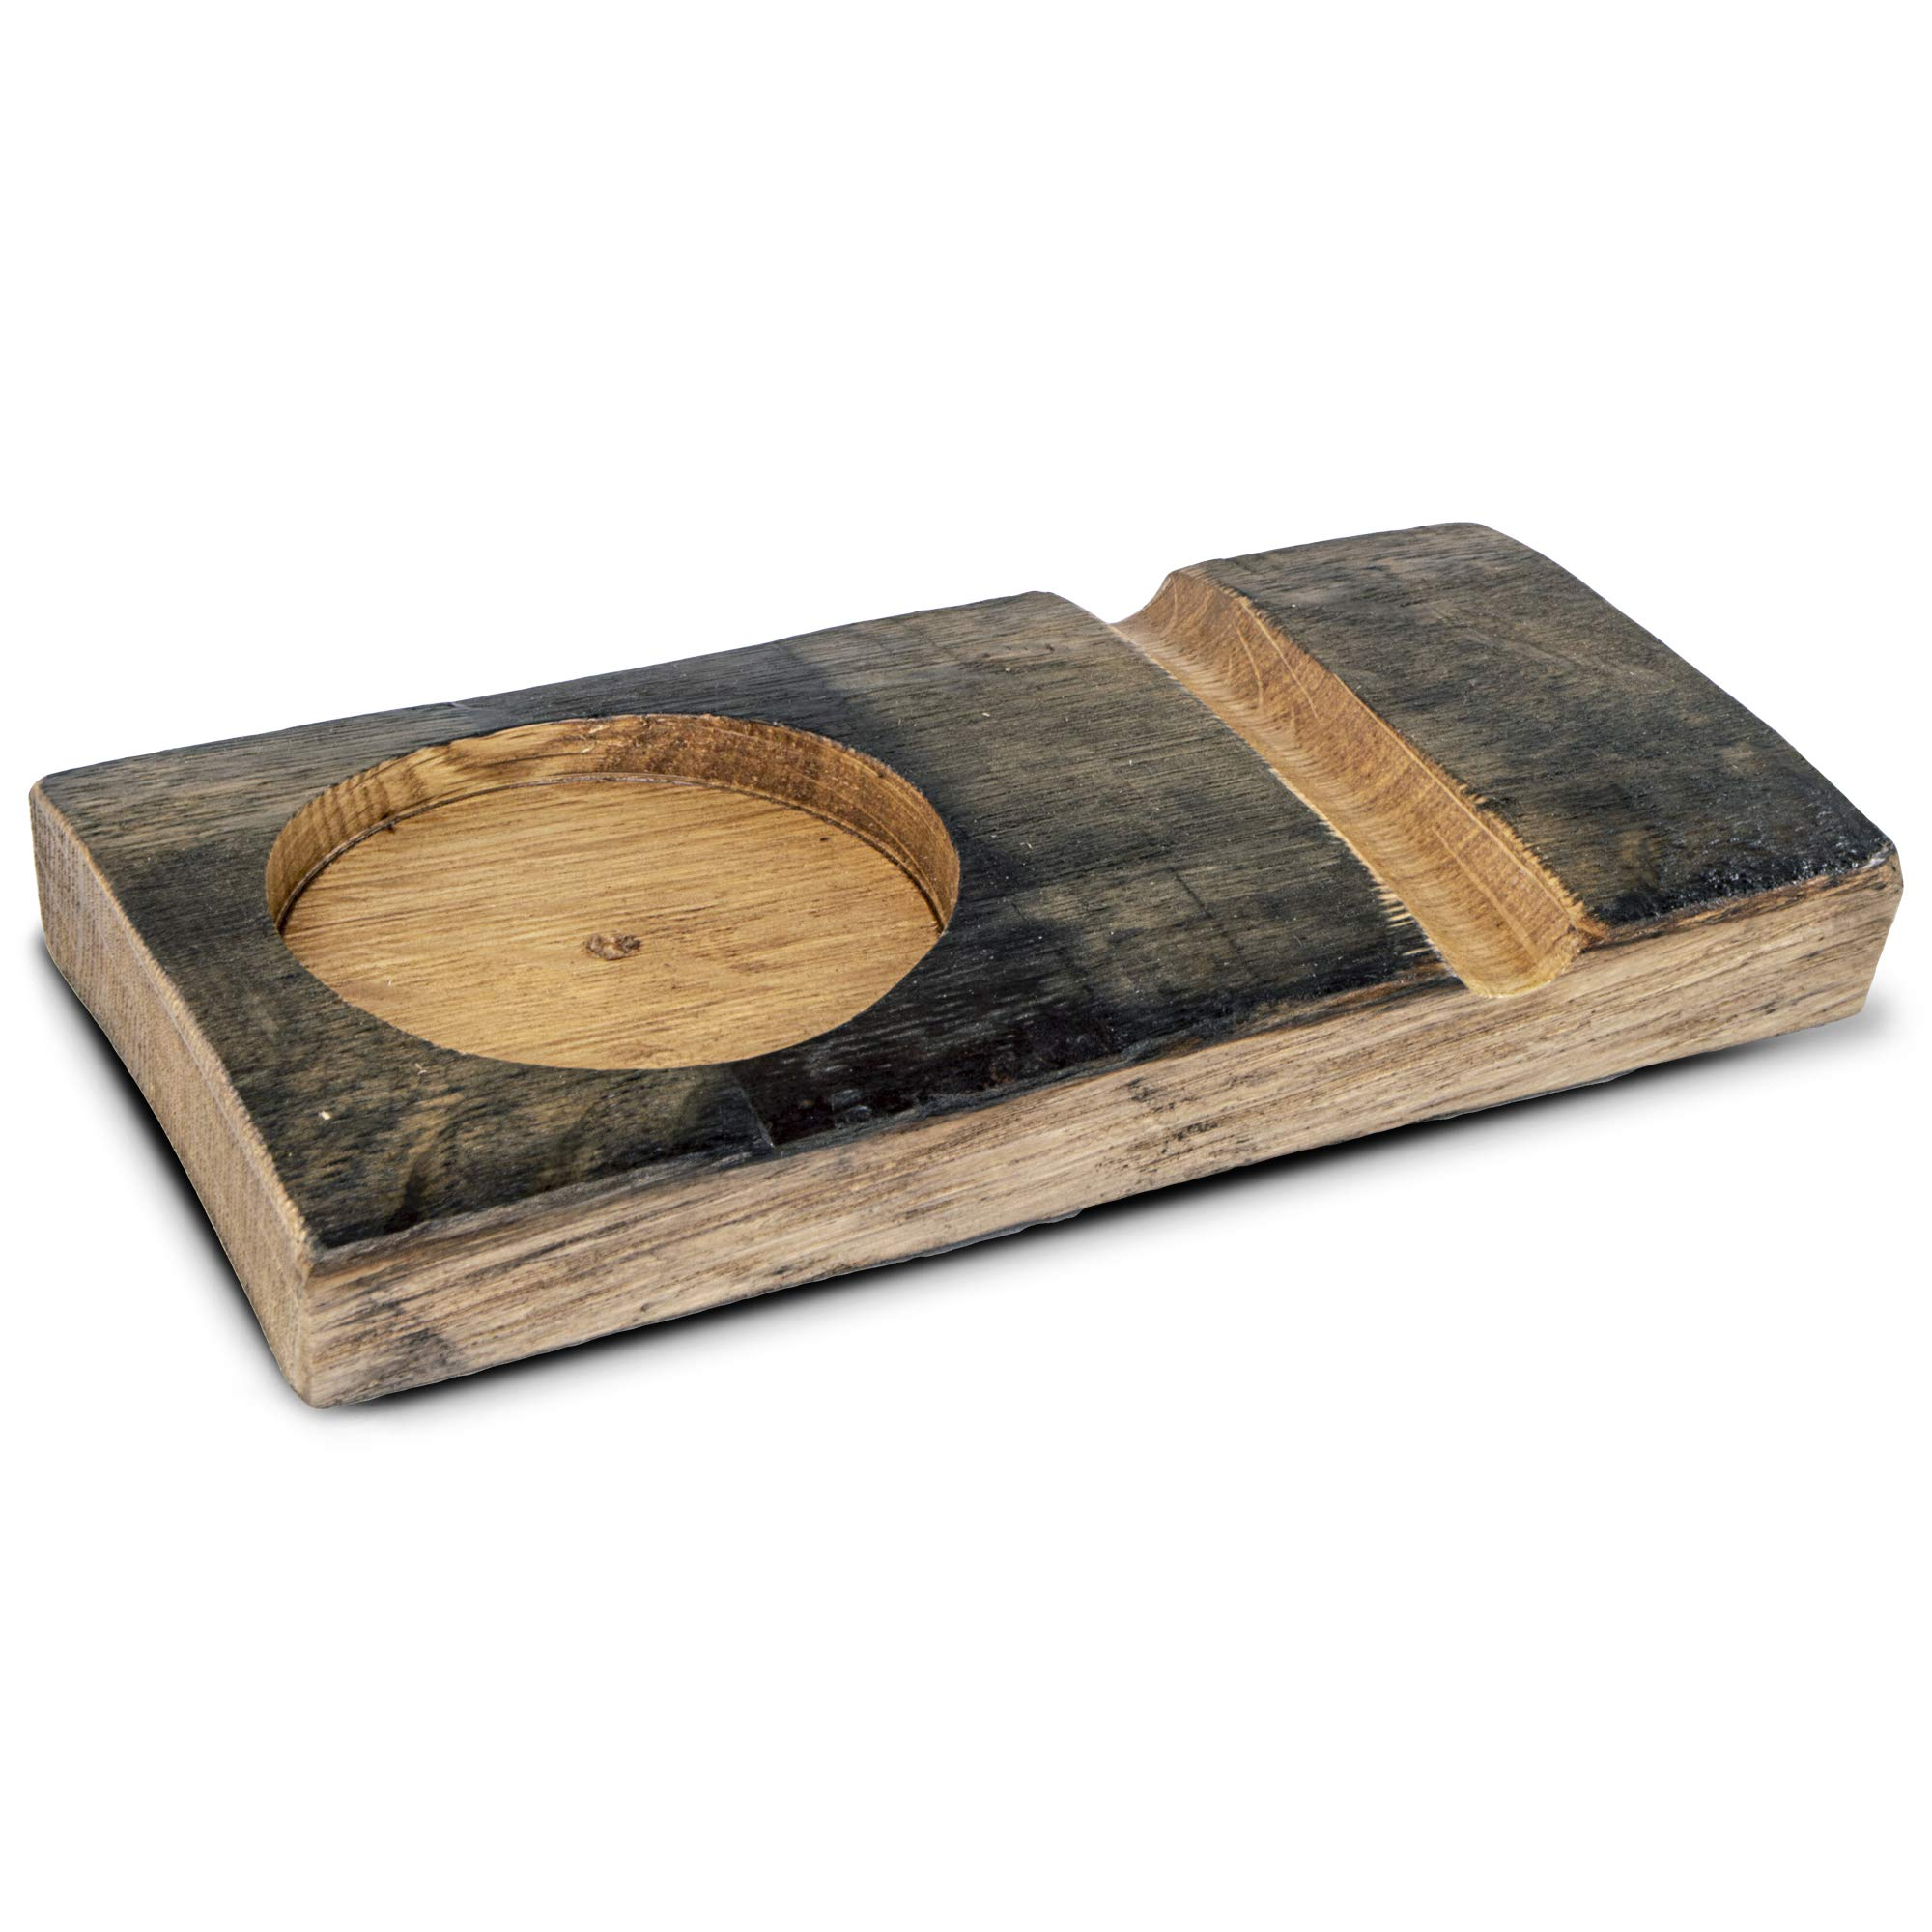 Handcrafted Rustic Wooden Whiskey Glass and Cigar Holder Tray Gift Set with Carved Wood Board and Highball Glass by BRIAR AND OAK WWW.BRIARANDOAK.COM (Image #4)